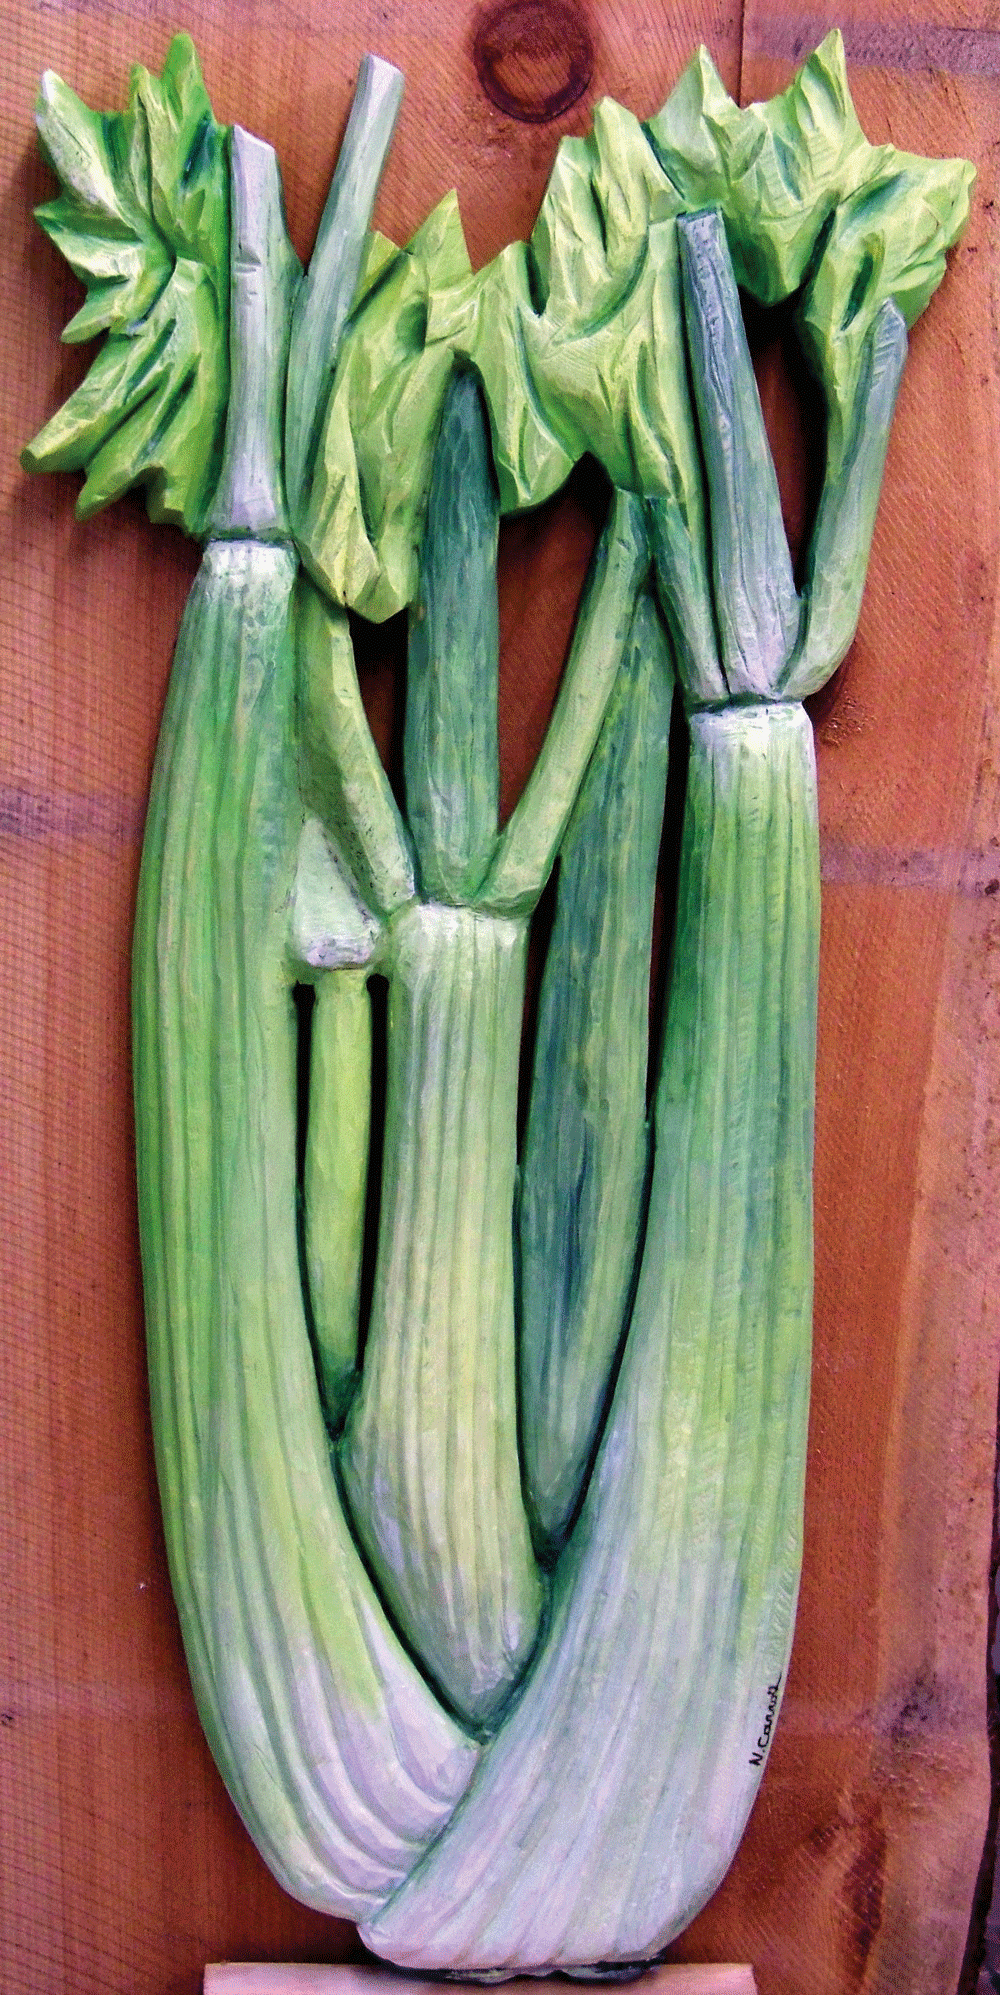 m_celery-cropped-copy.png